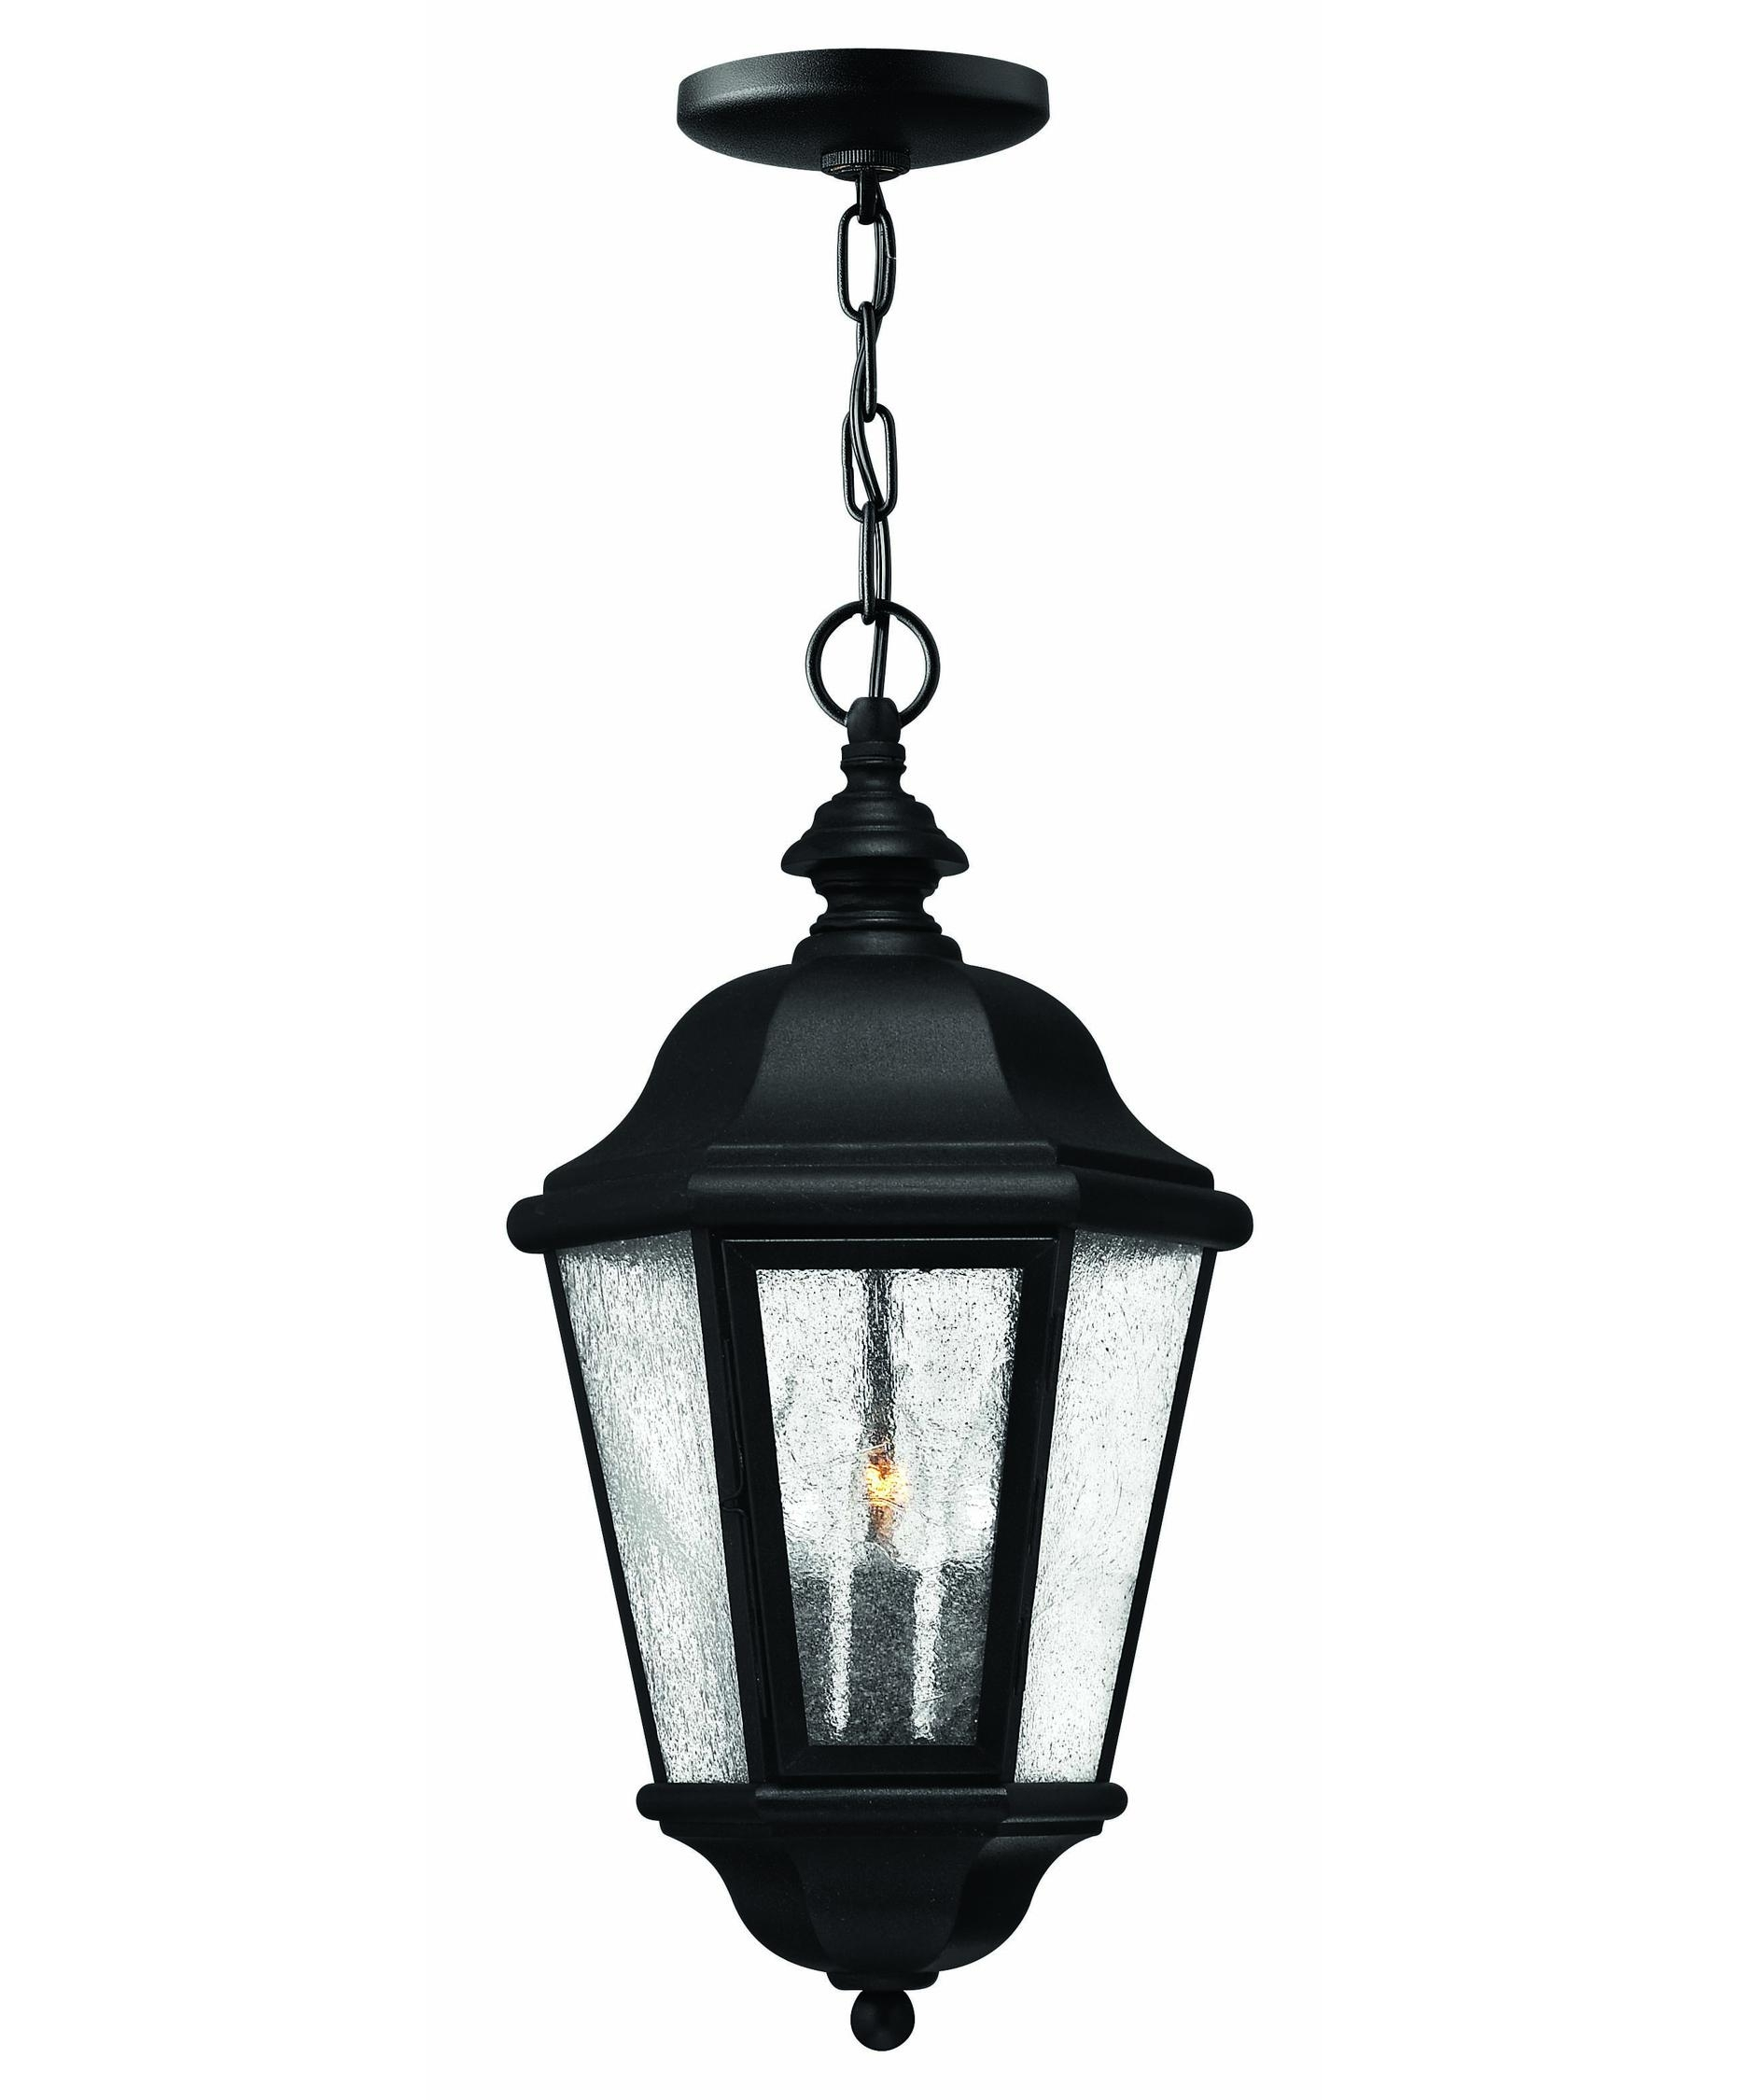 Inspiration about Popular Hanging Outdoor Lights With Regard To Yard The Best Designs With Regard To Hanging Outdoor Light On Rod (#3 of 16)